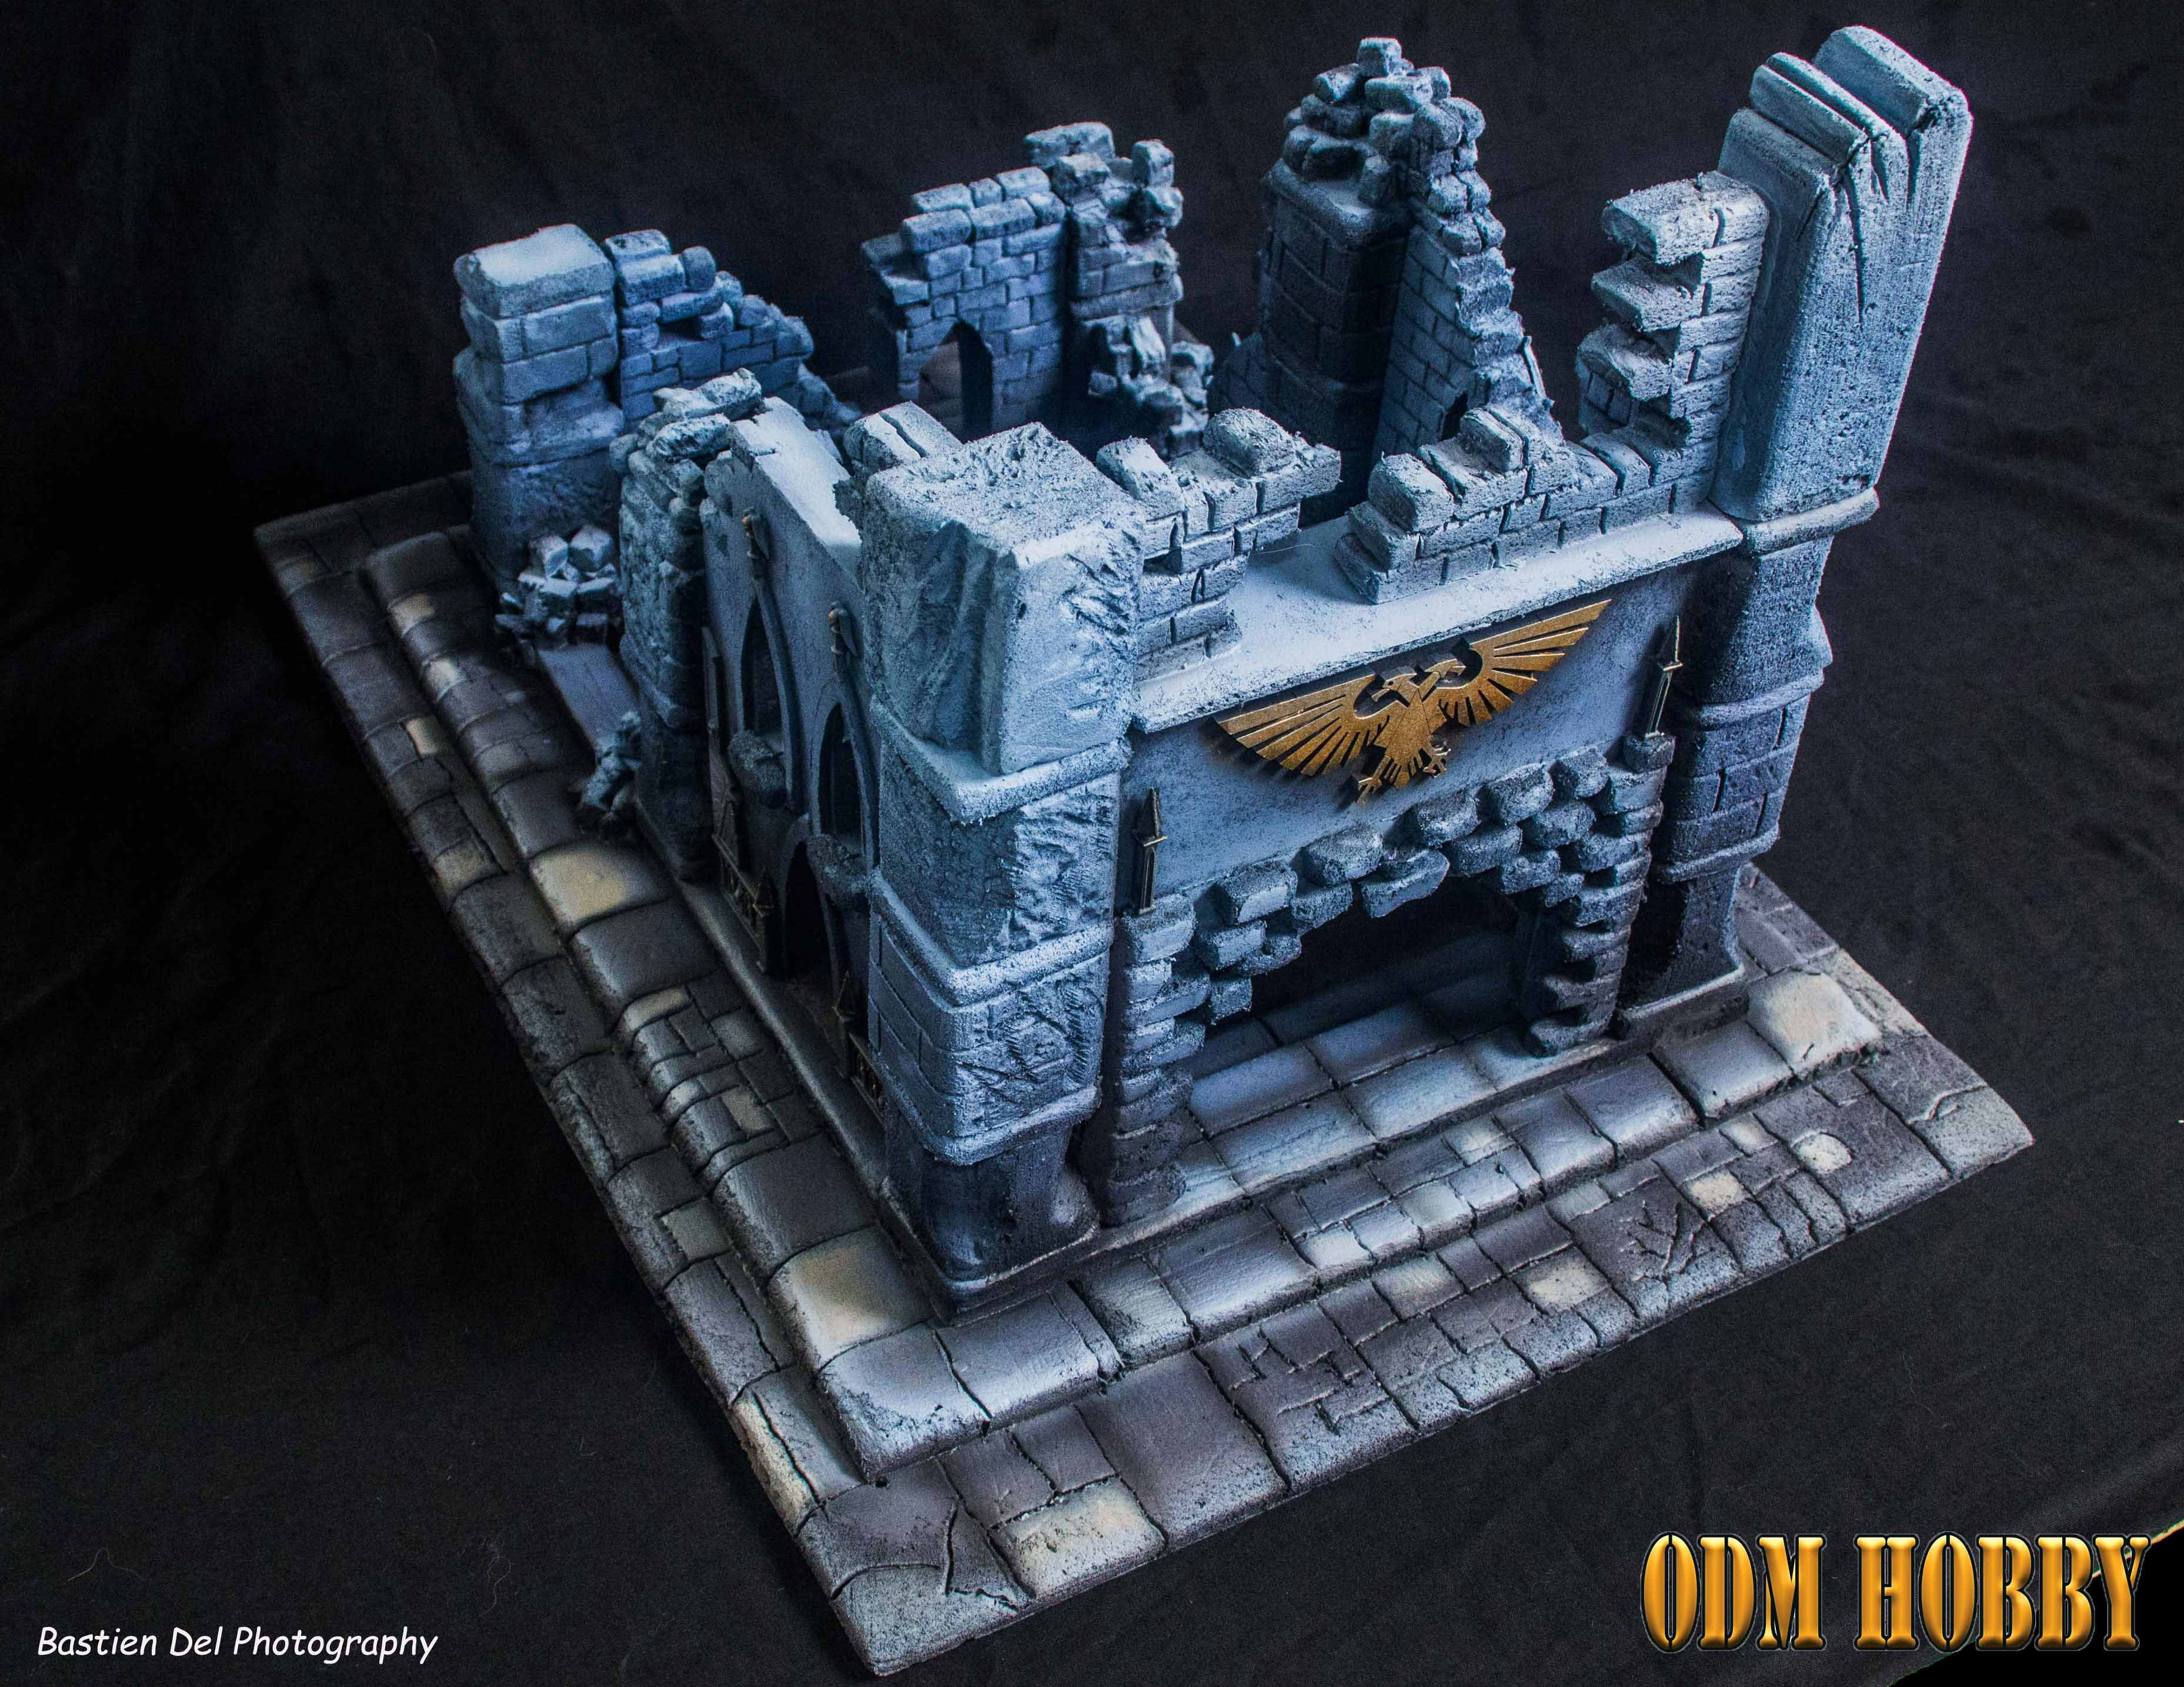 warhammer-40000-scenery-commission-foam-cathedral-imperium-aquila-odmhobby